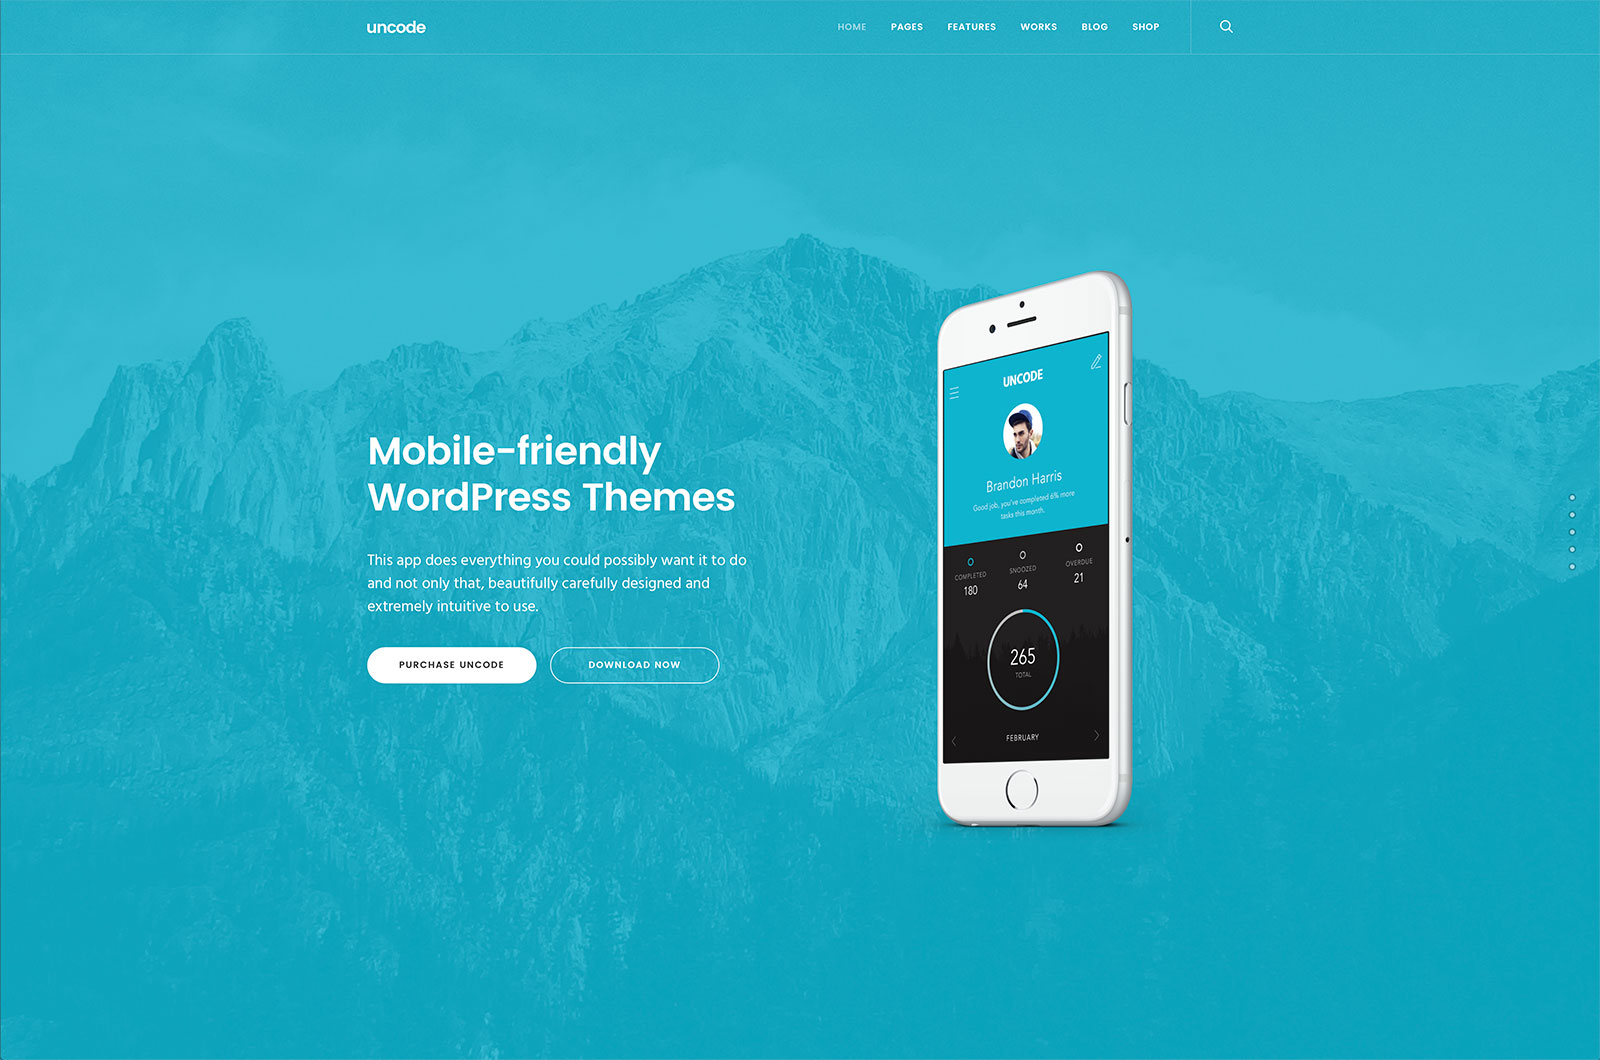 20 mobile friendly wordpress themes to help with seo and website usability on mobile 2018